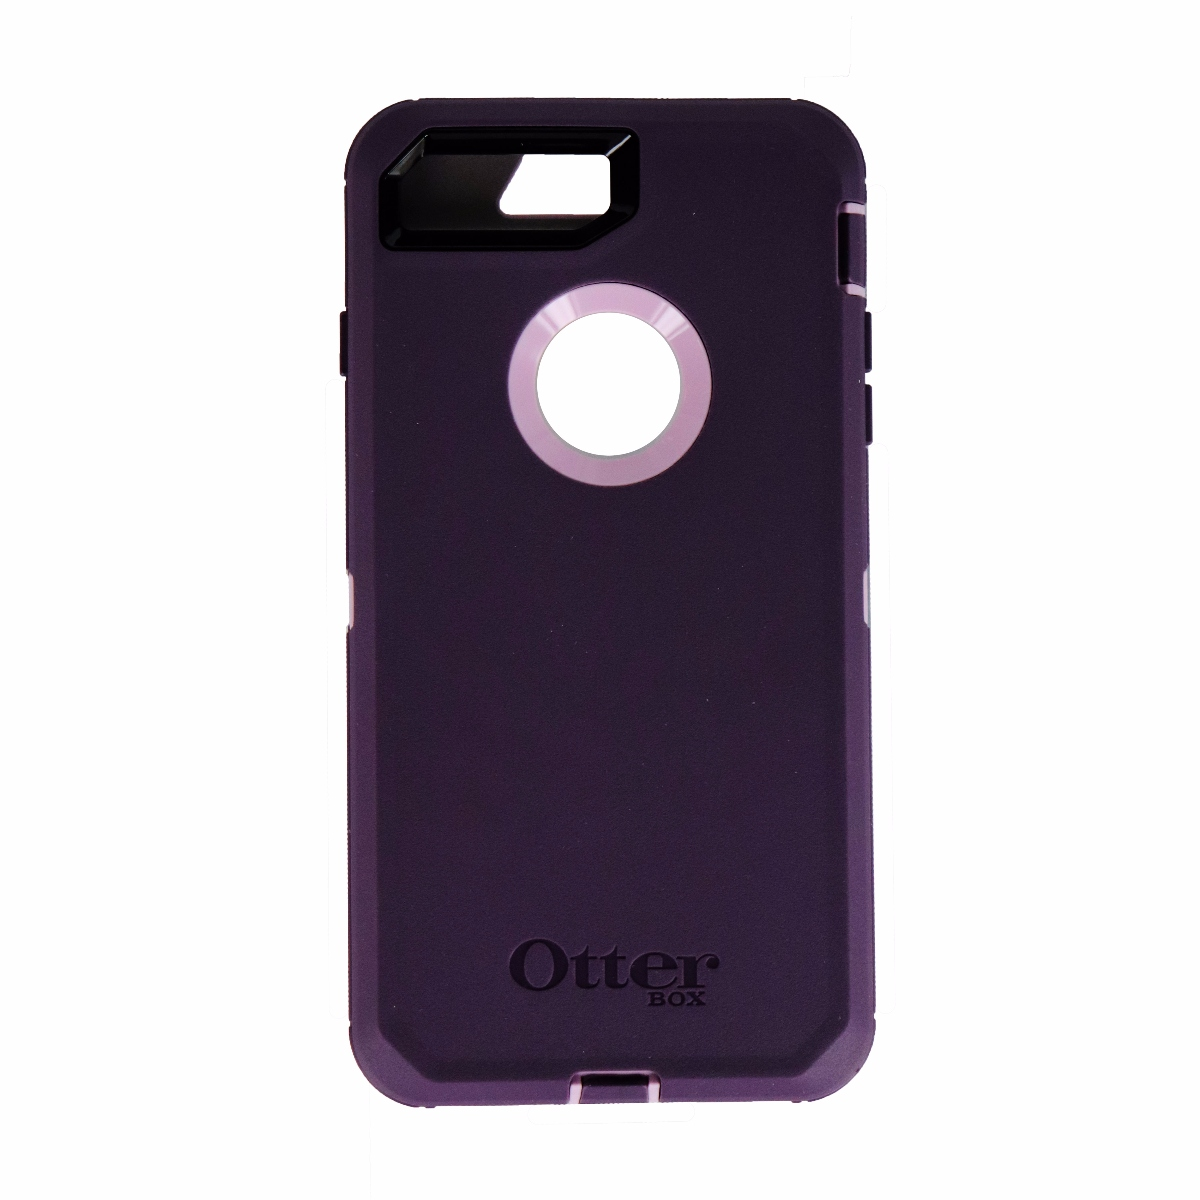 OtterBox Defender Case for iPhone 7/8 Plus - Purple Nebula (Orchid/Night Purple)